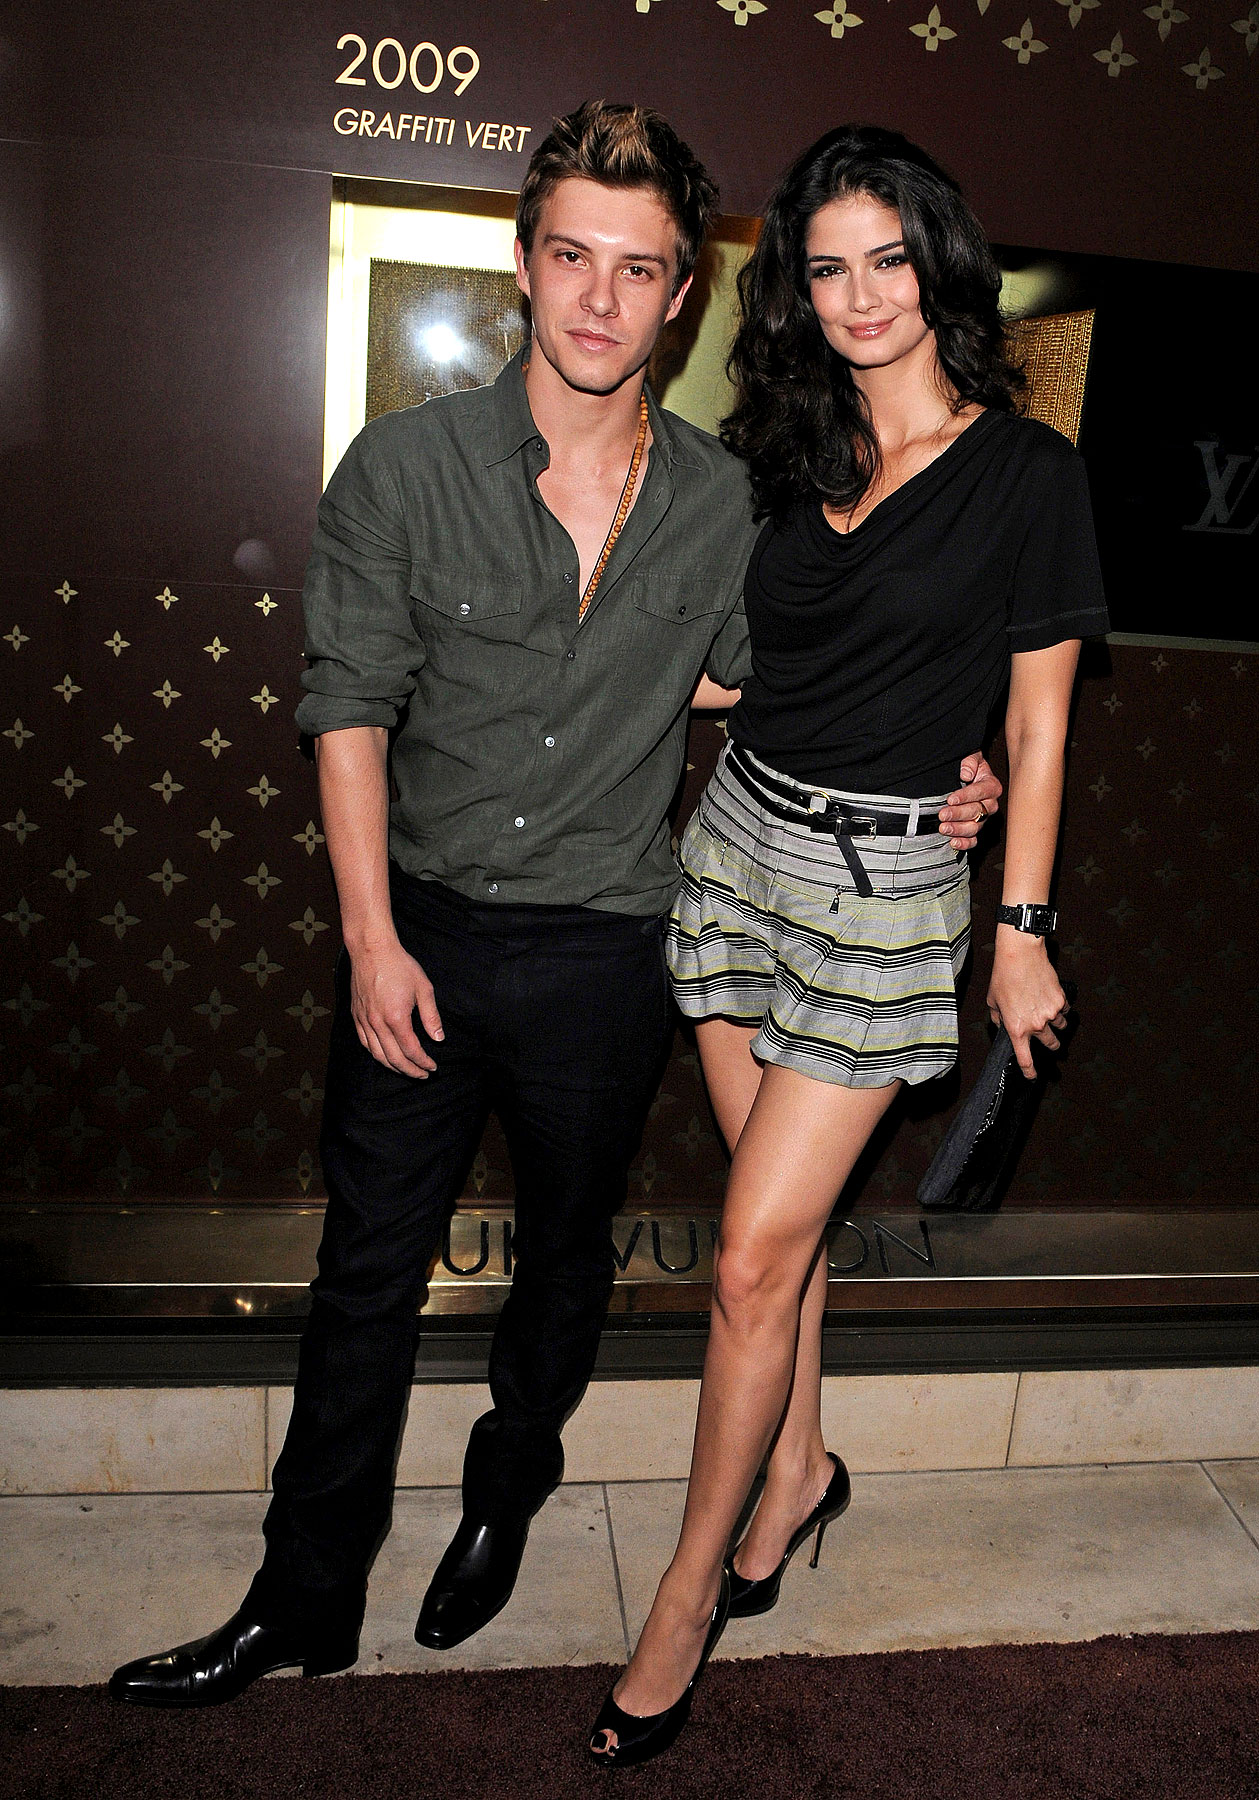 Xavier Samuel Shows Off His New Girlfriend in L.A. (PHOTOS)